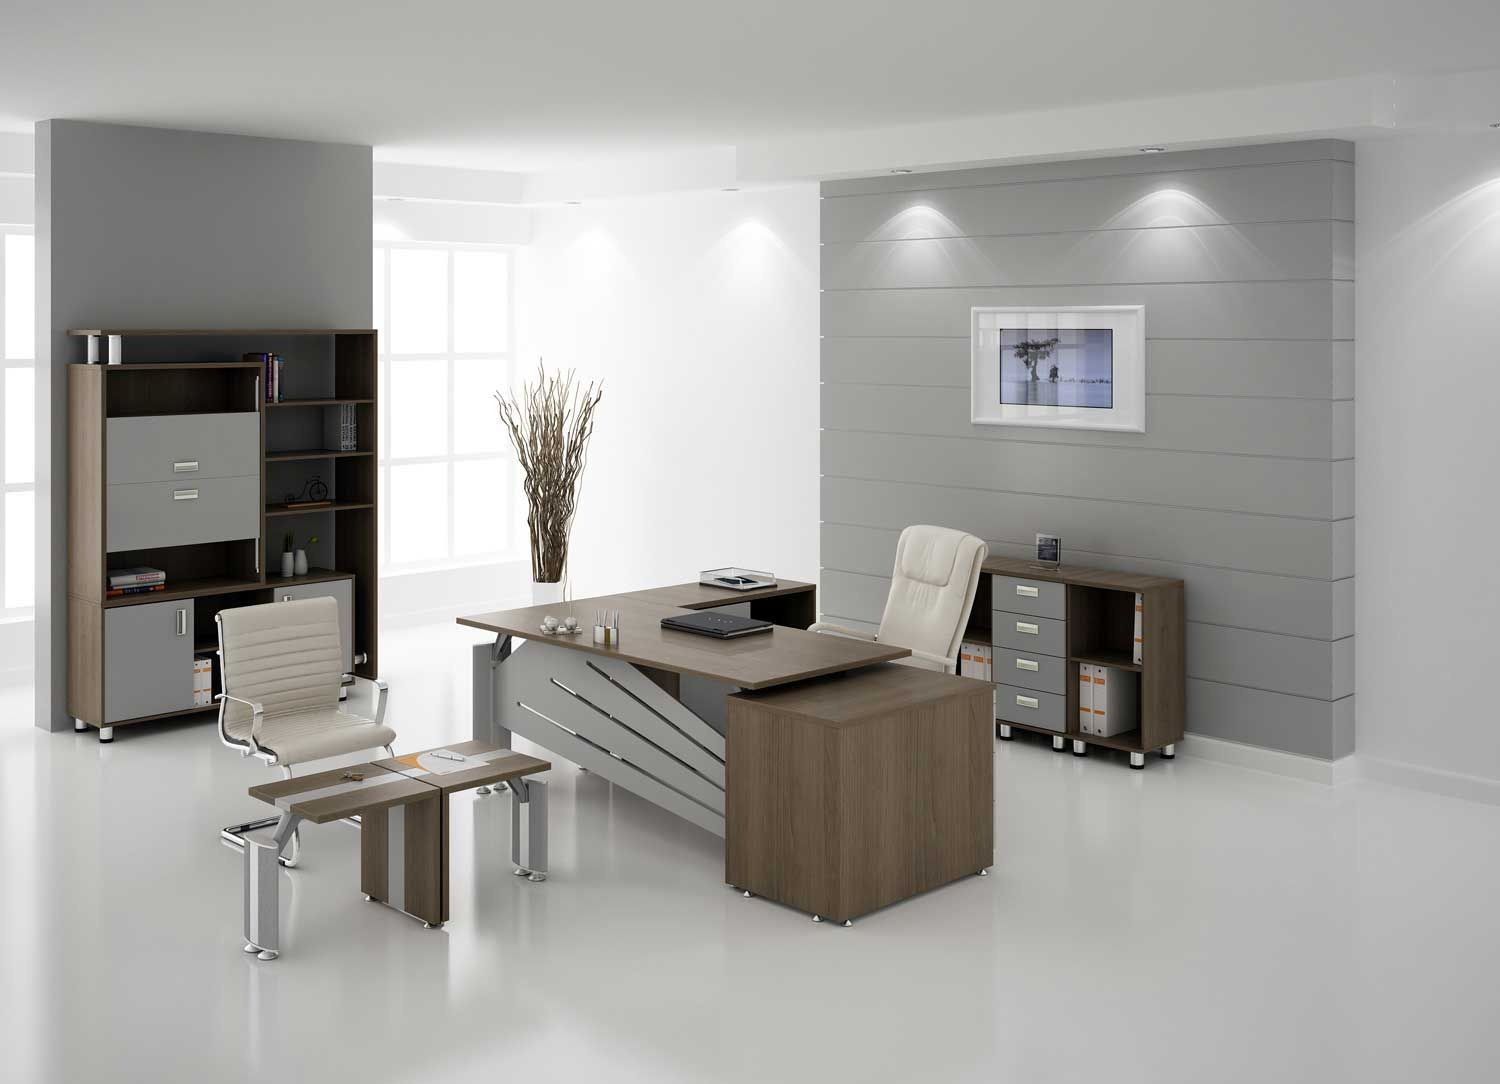 modern office decorating ideas. images of office furniture in indiana design and style modern decormodern decorating ideas e